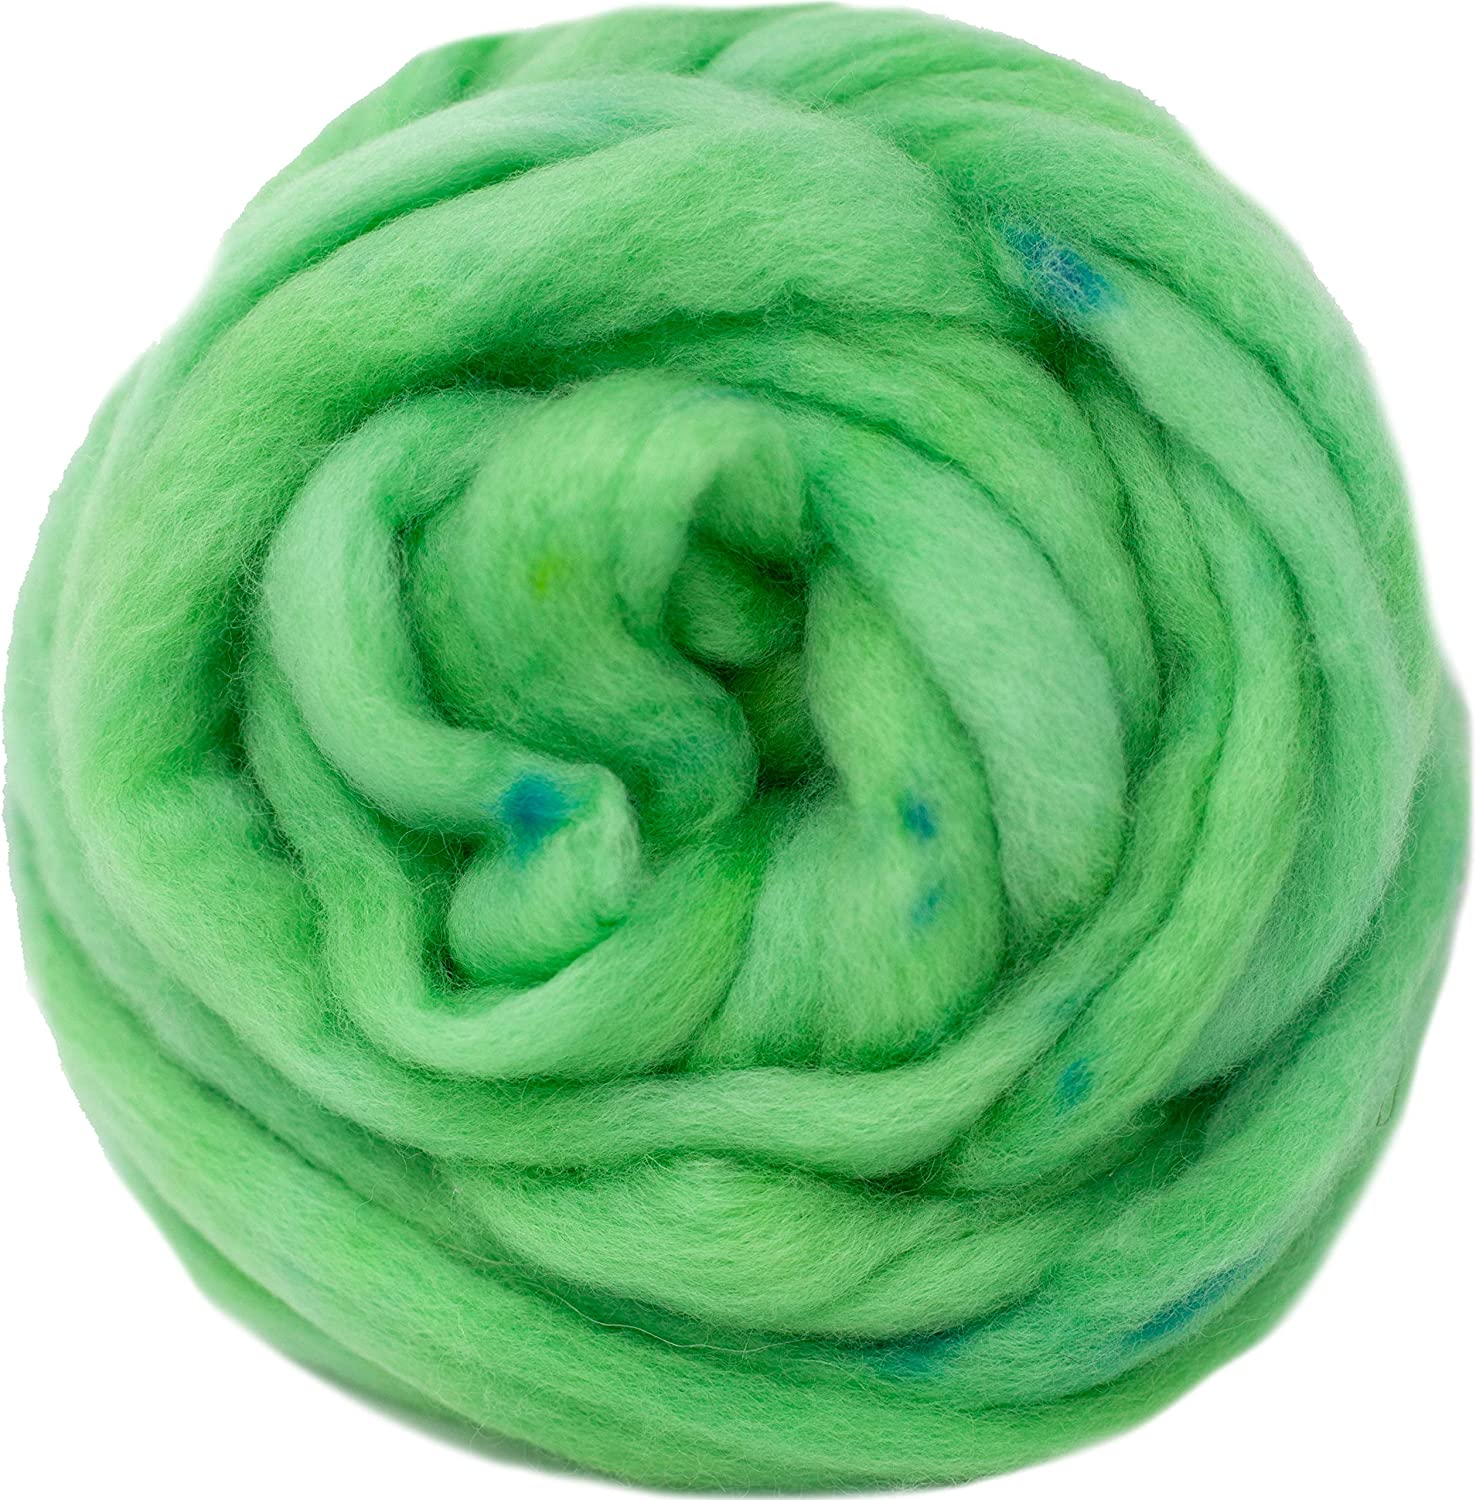 Wool Roving Hand Dyed. Super Soft sale period limited BFL Combed Excellence for Top Pre-Drafted